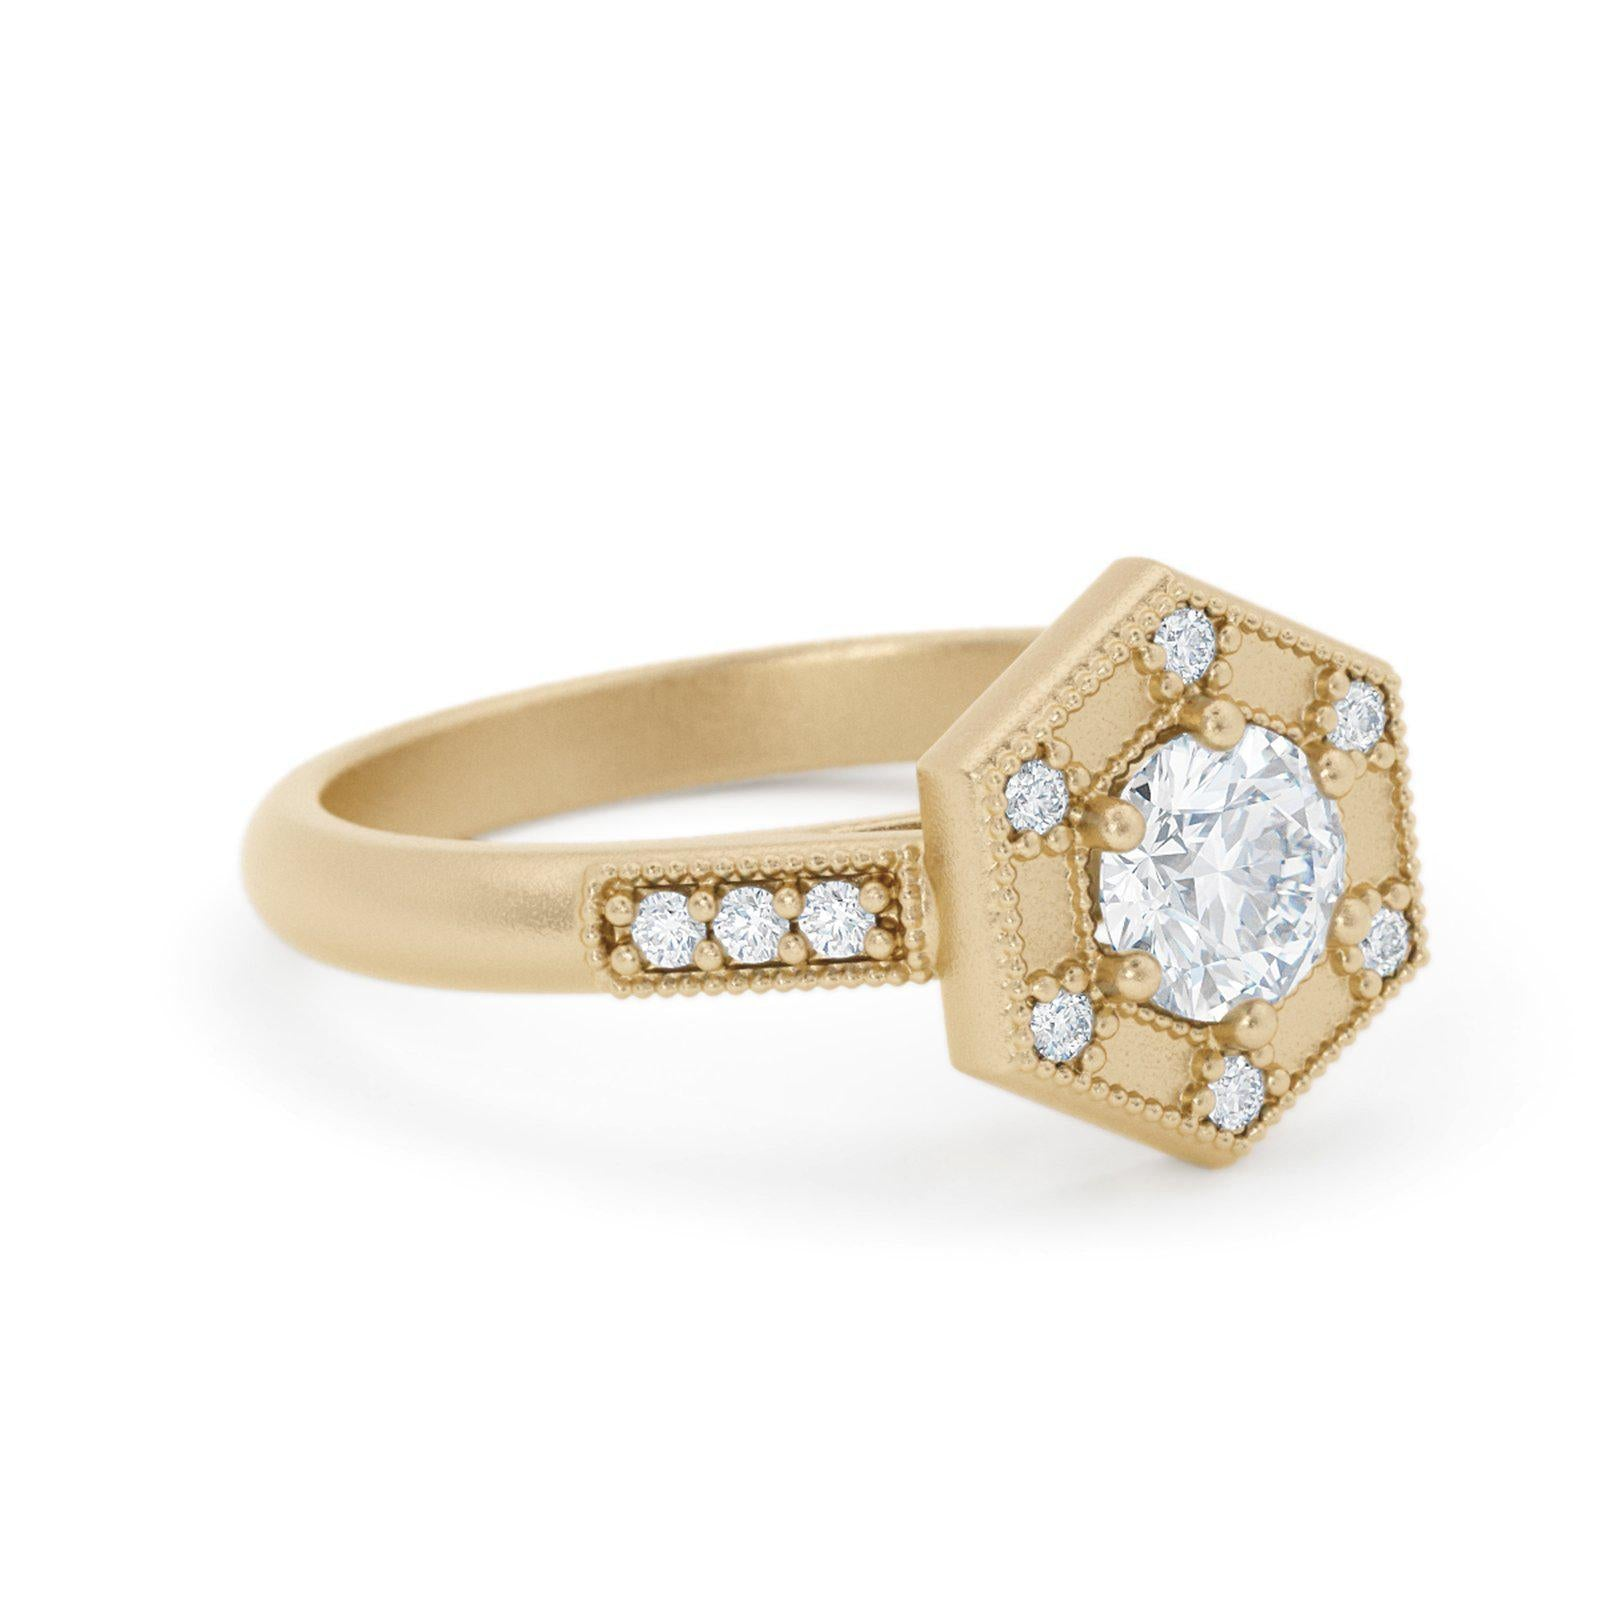 Claudette Art Deco Diamond Ring